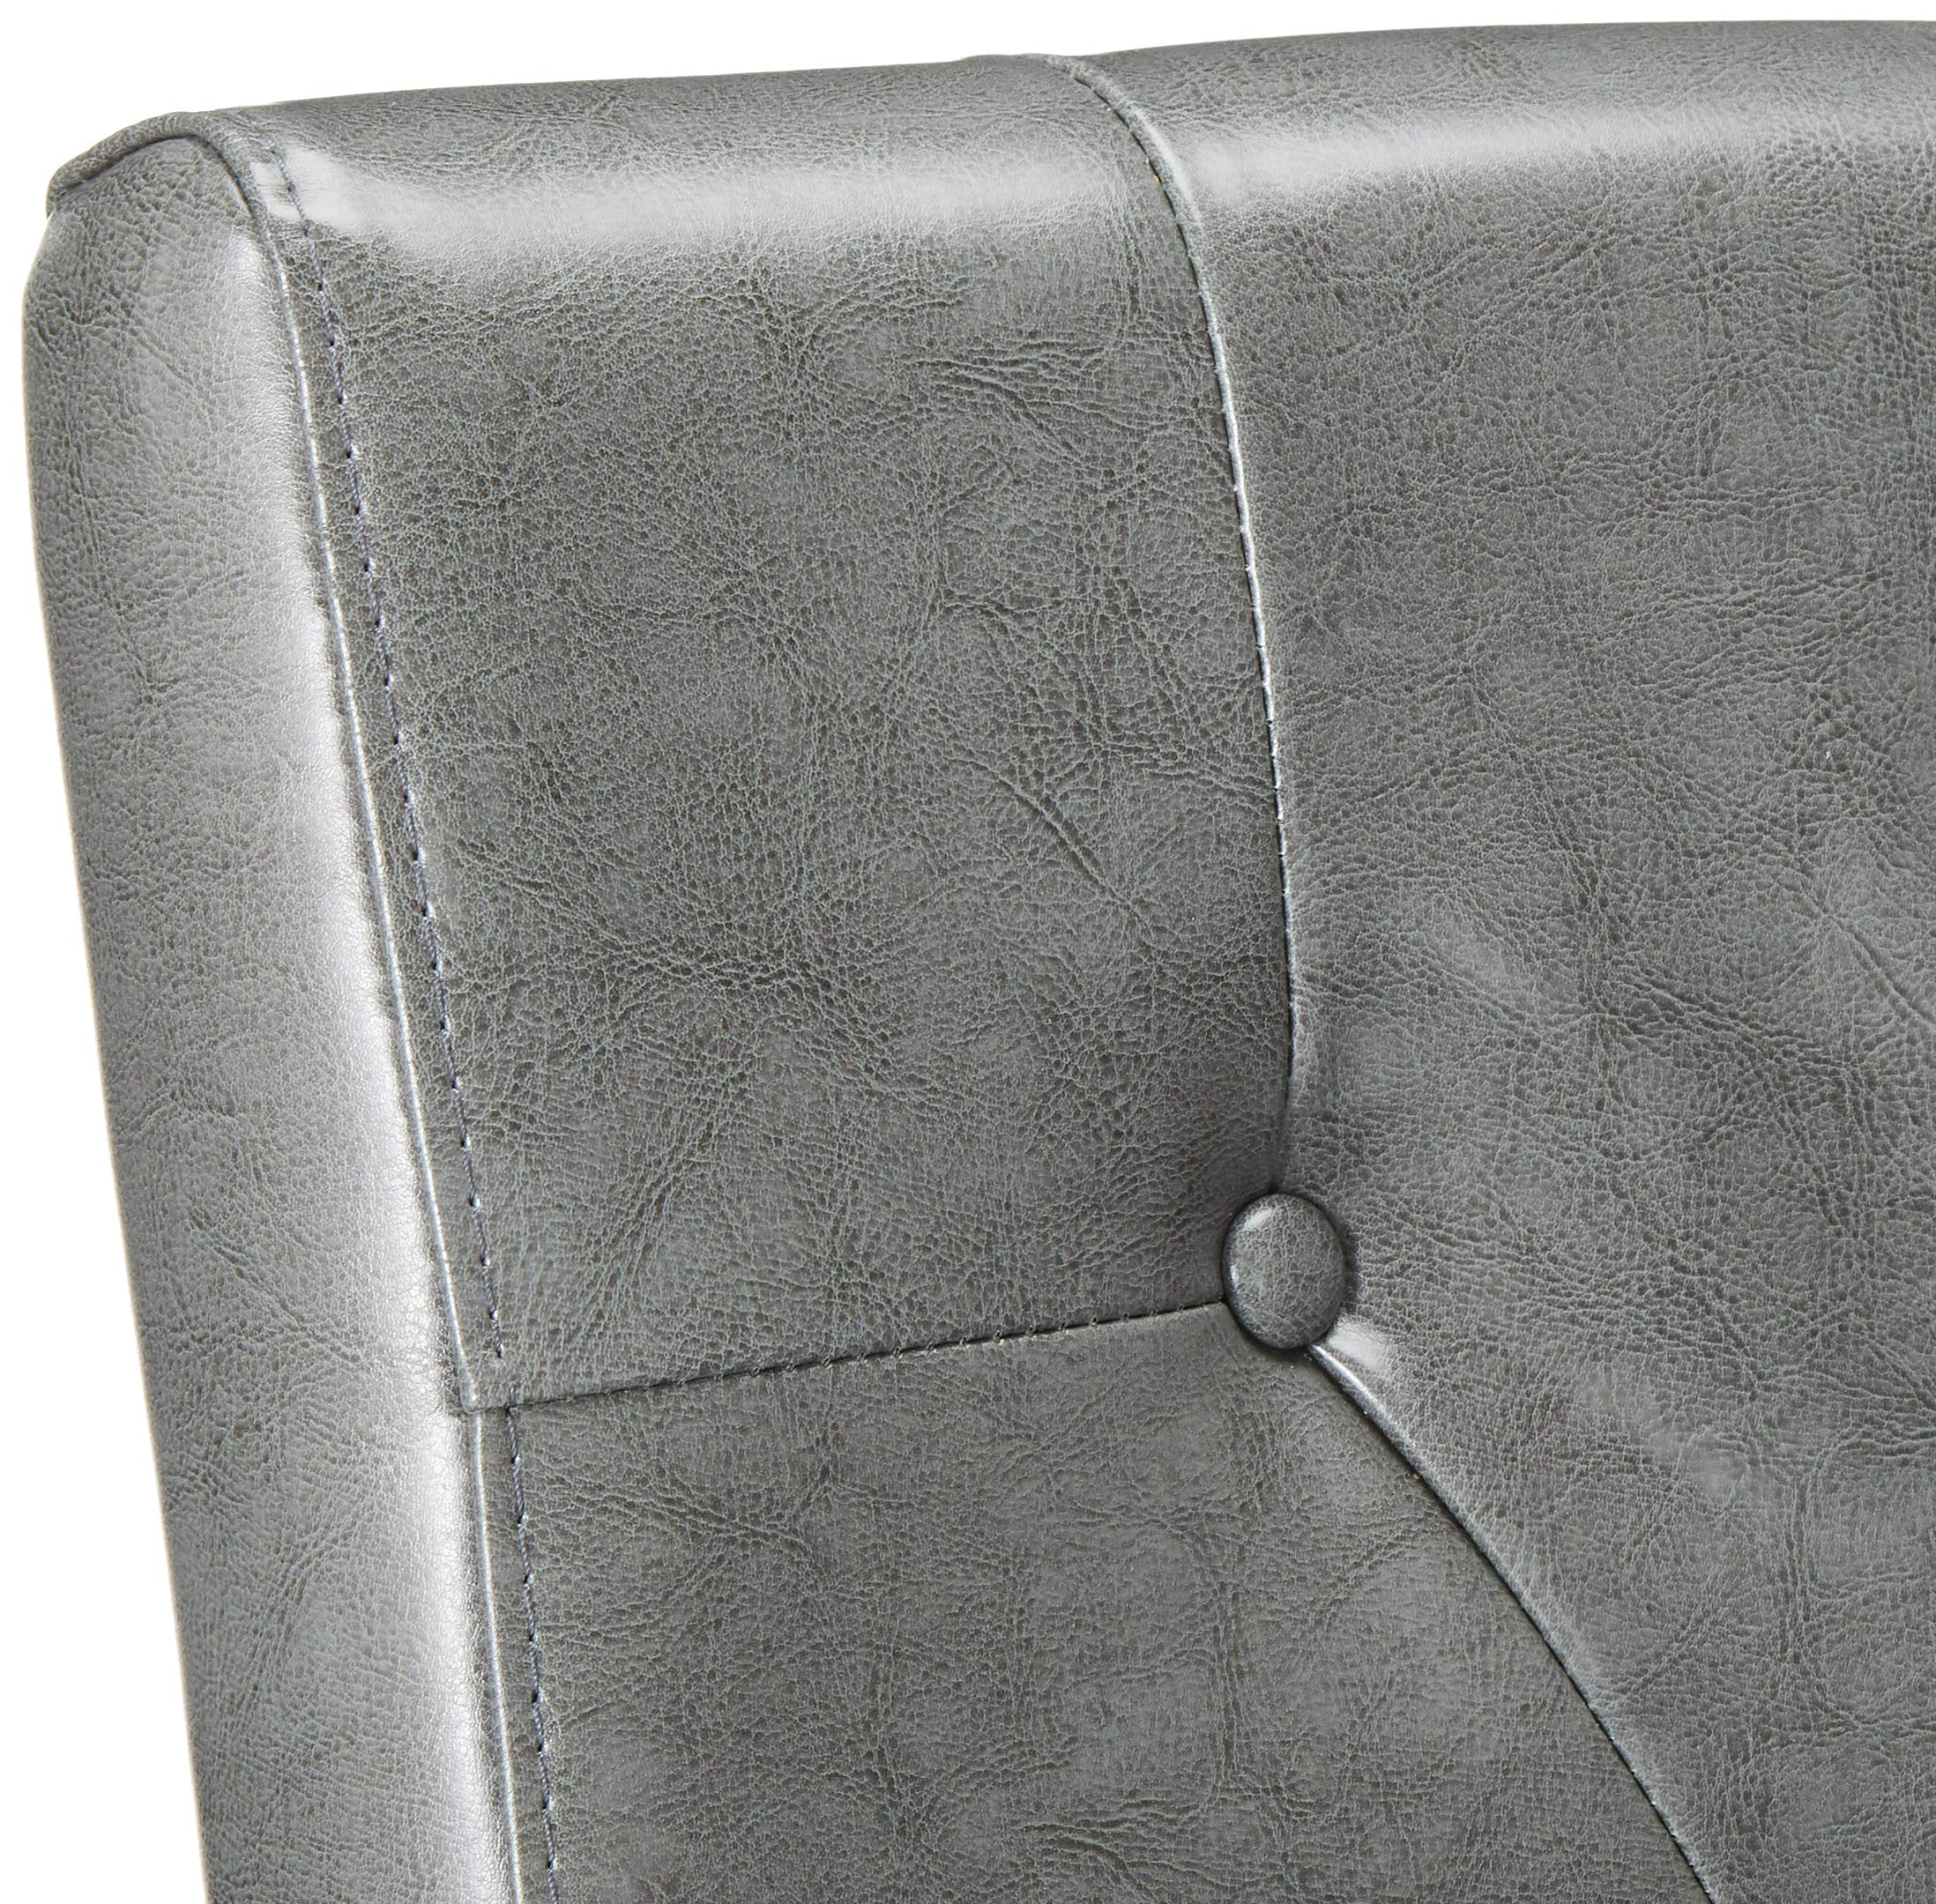 Christopher Knight Home 214519 Alexander Grey Leather Dining Chairs (Set of 2), by Christopher Knight Home (Image #4)